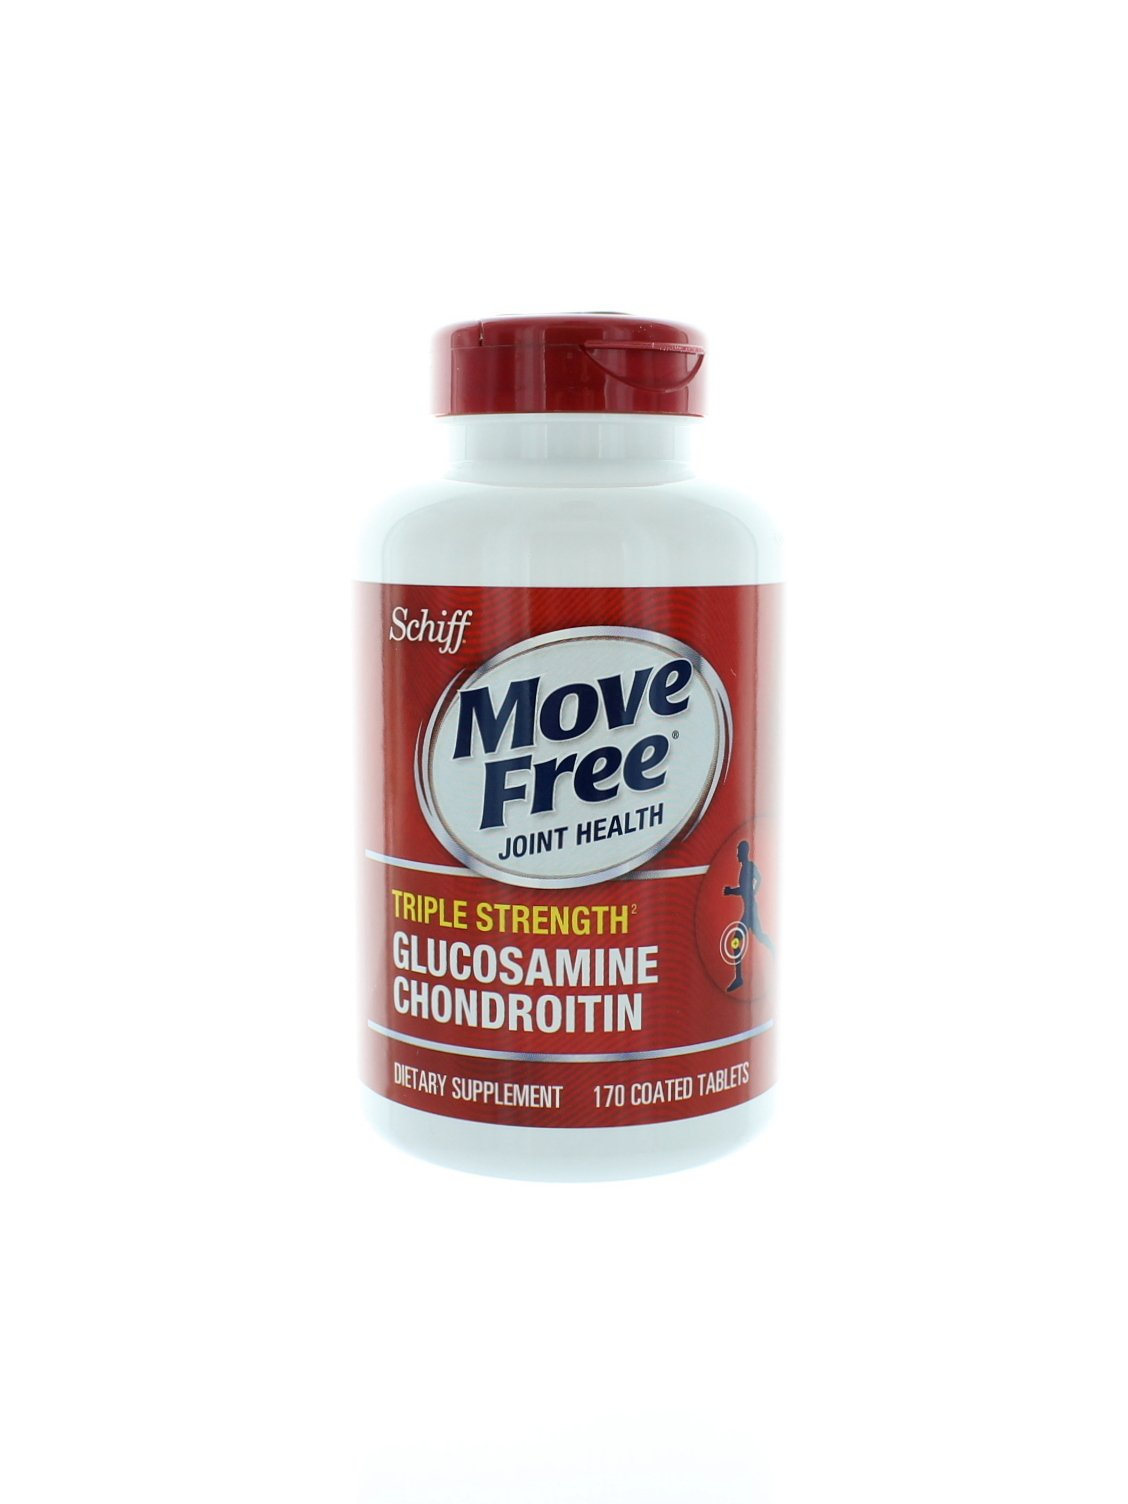 Schiff Move Free Joint Health Triple Strength Glucosamine Chondroitin - 10 Bottles, 170 Tablets Each